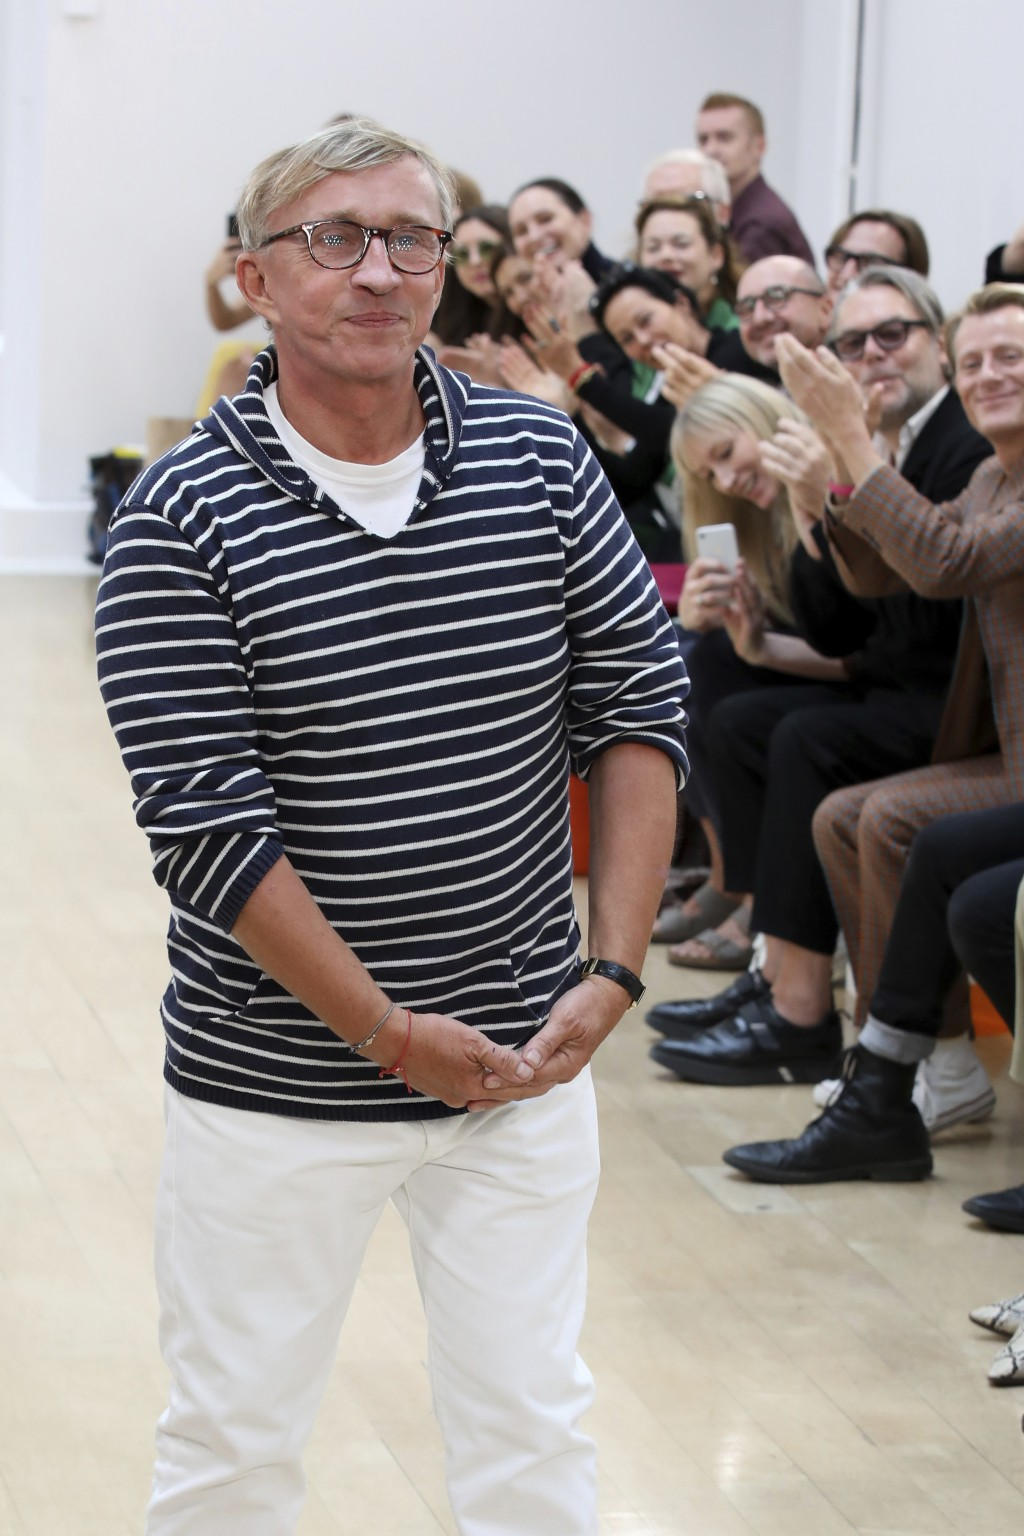 Designer Jasper Conran accepts applause at the end of his Spring/Summer 2019 runway show at London Fashion Week in London, Saturday, Sept. 15, 2018. (